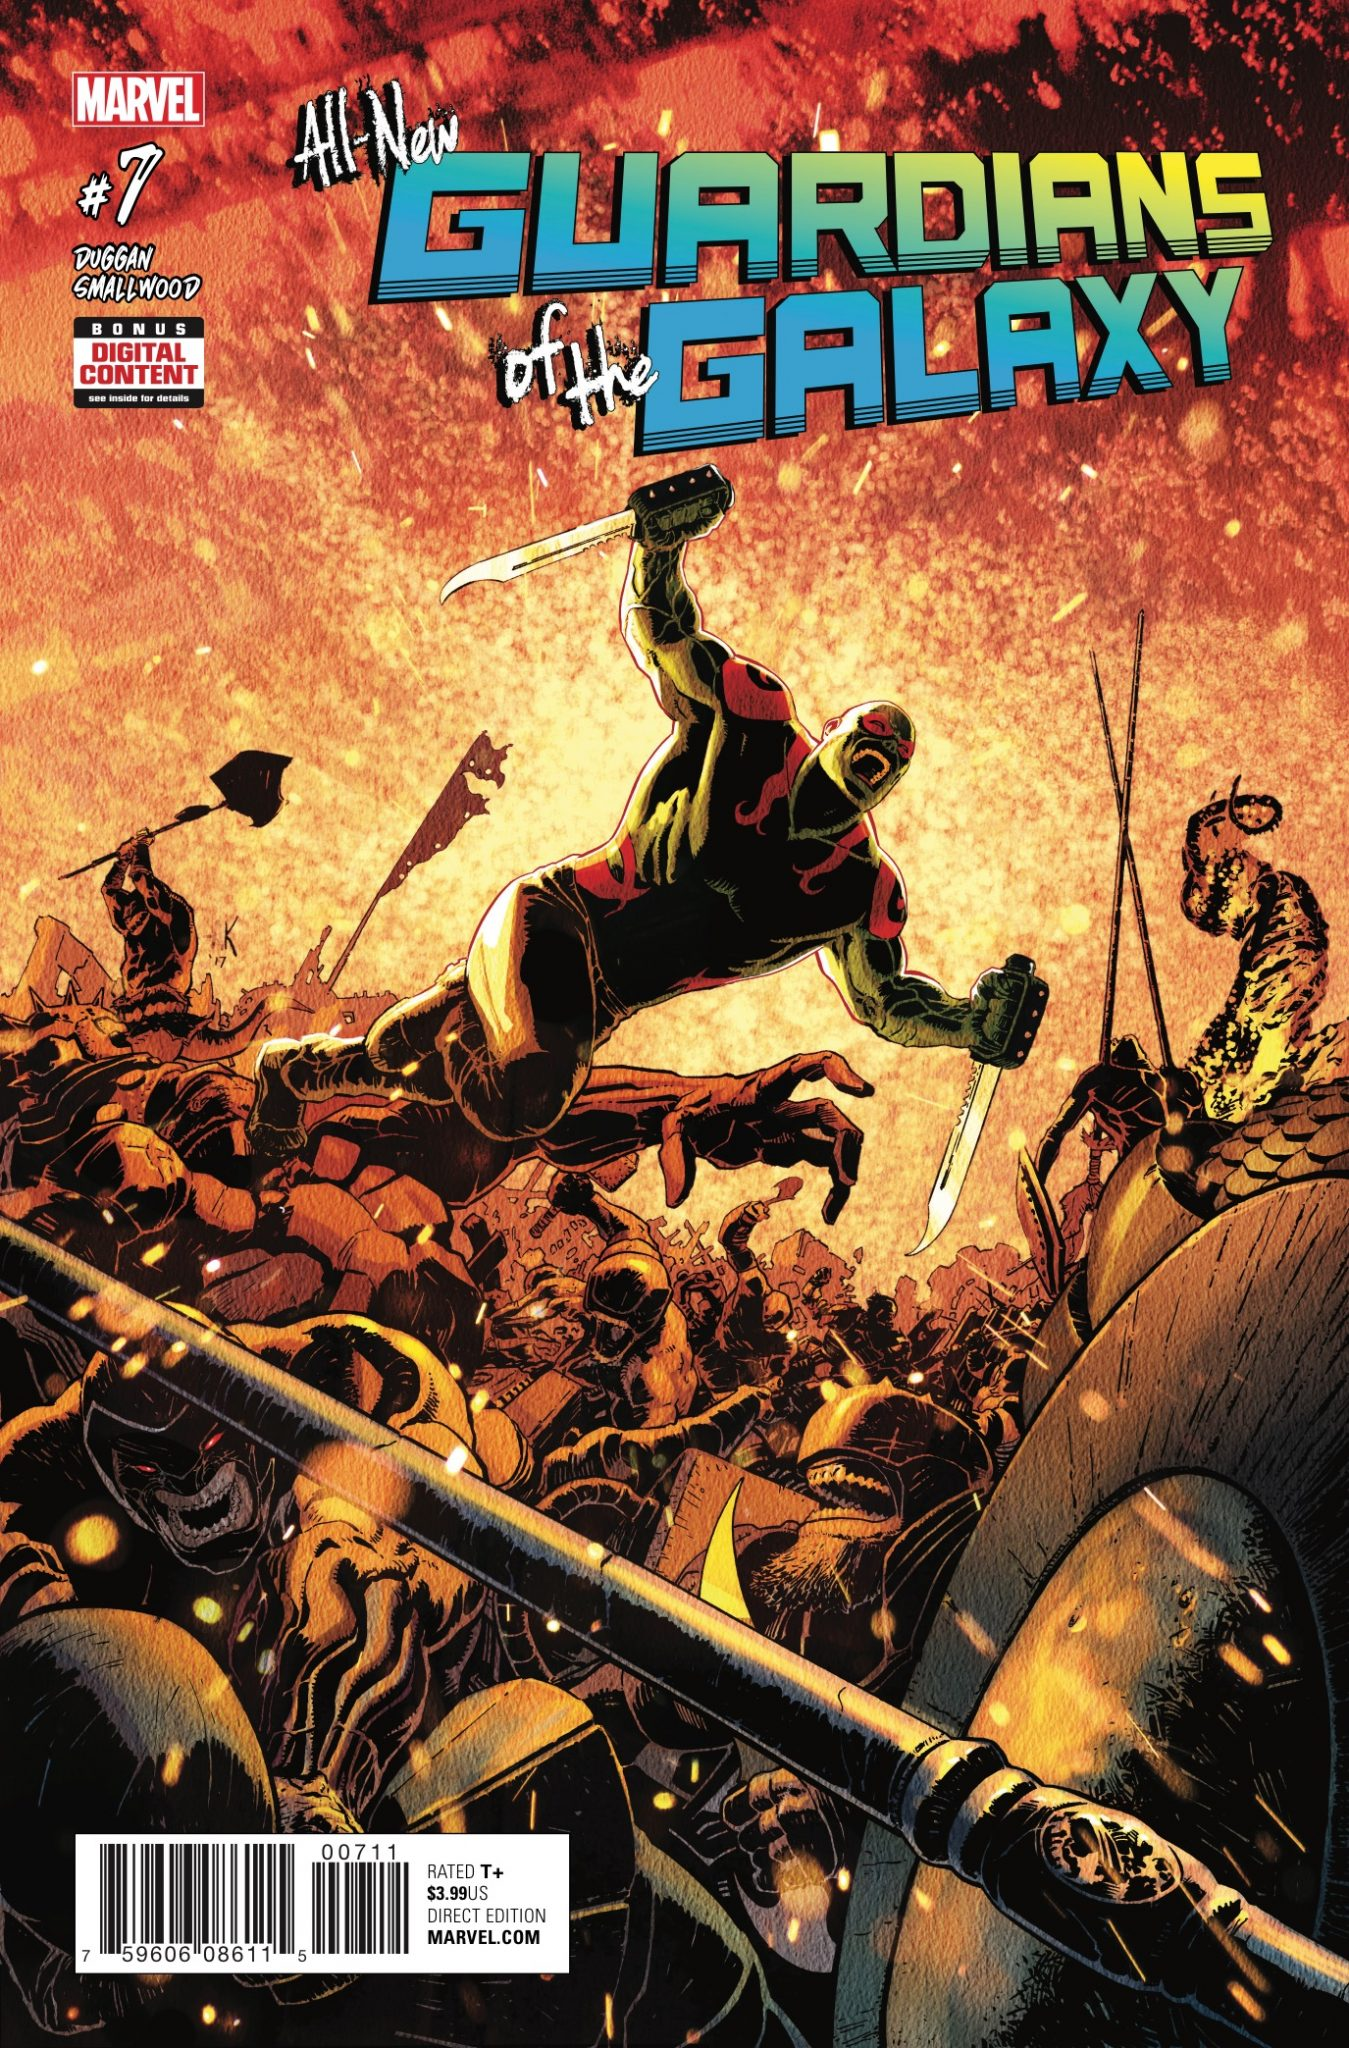 All-New Guardians of the Galaxy #7 Review